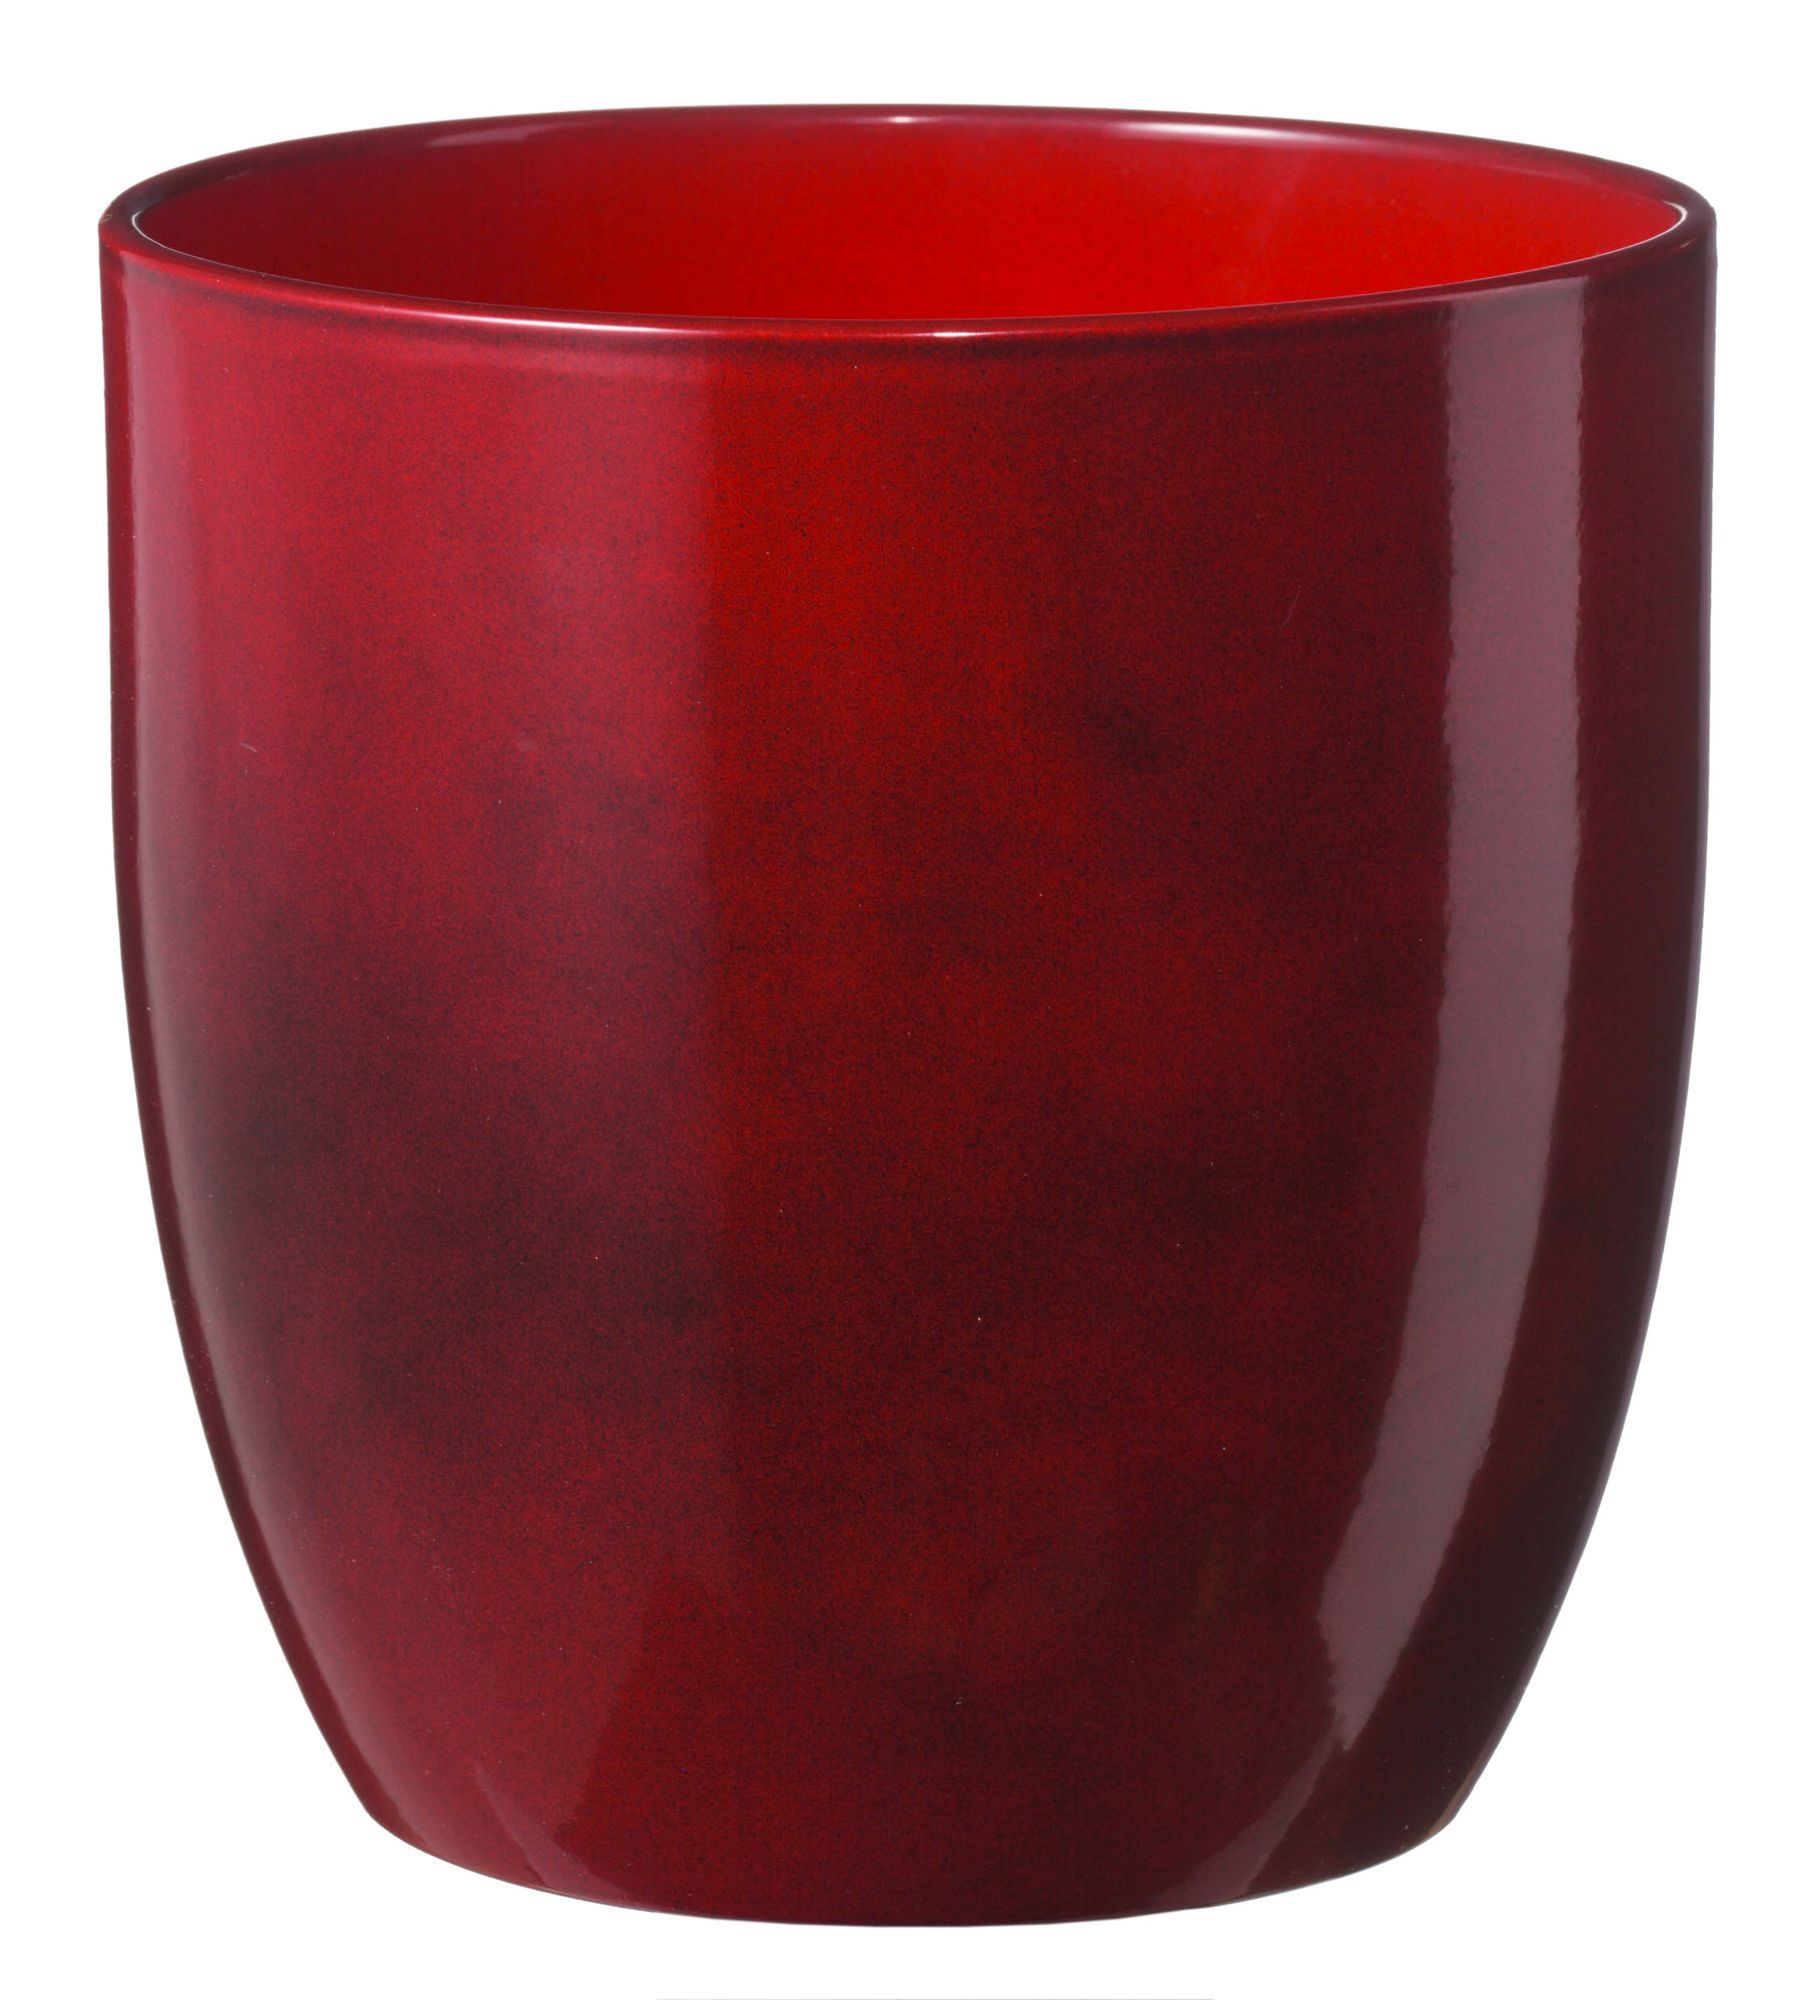 Basel Round Glazed Dark Red Brushed Plant Pot H 23cm Dia 24cm Departments Diy At B Q Potted Plants Plants Dark Red